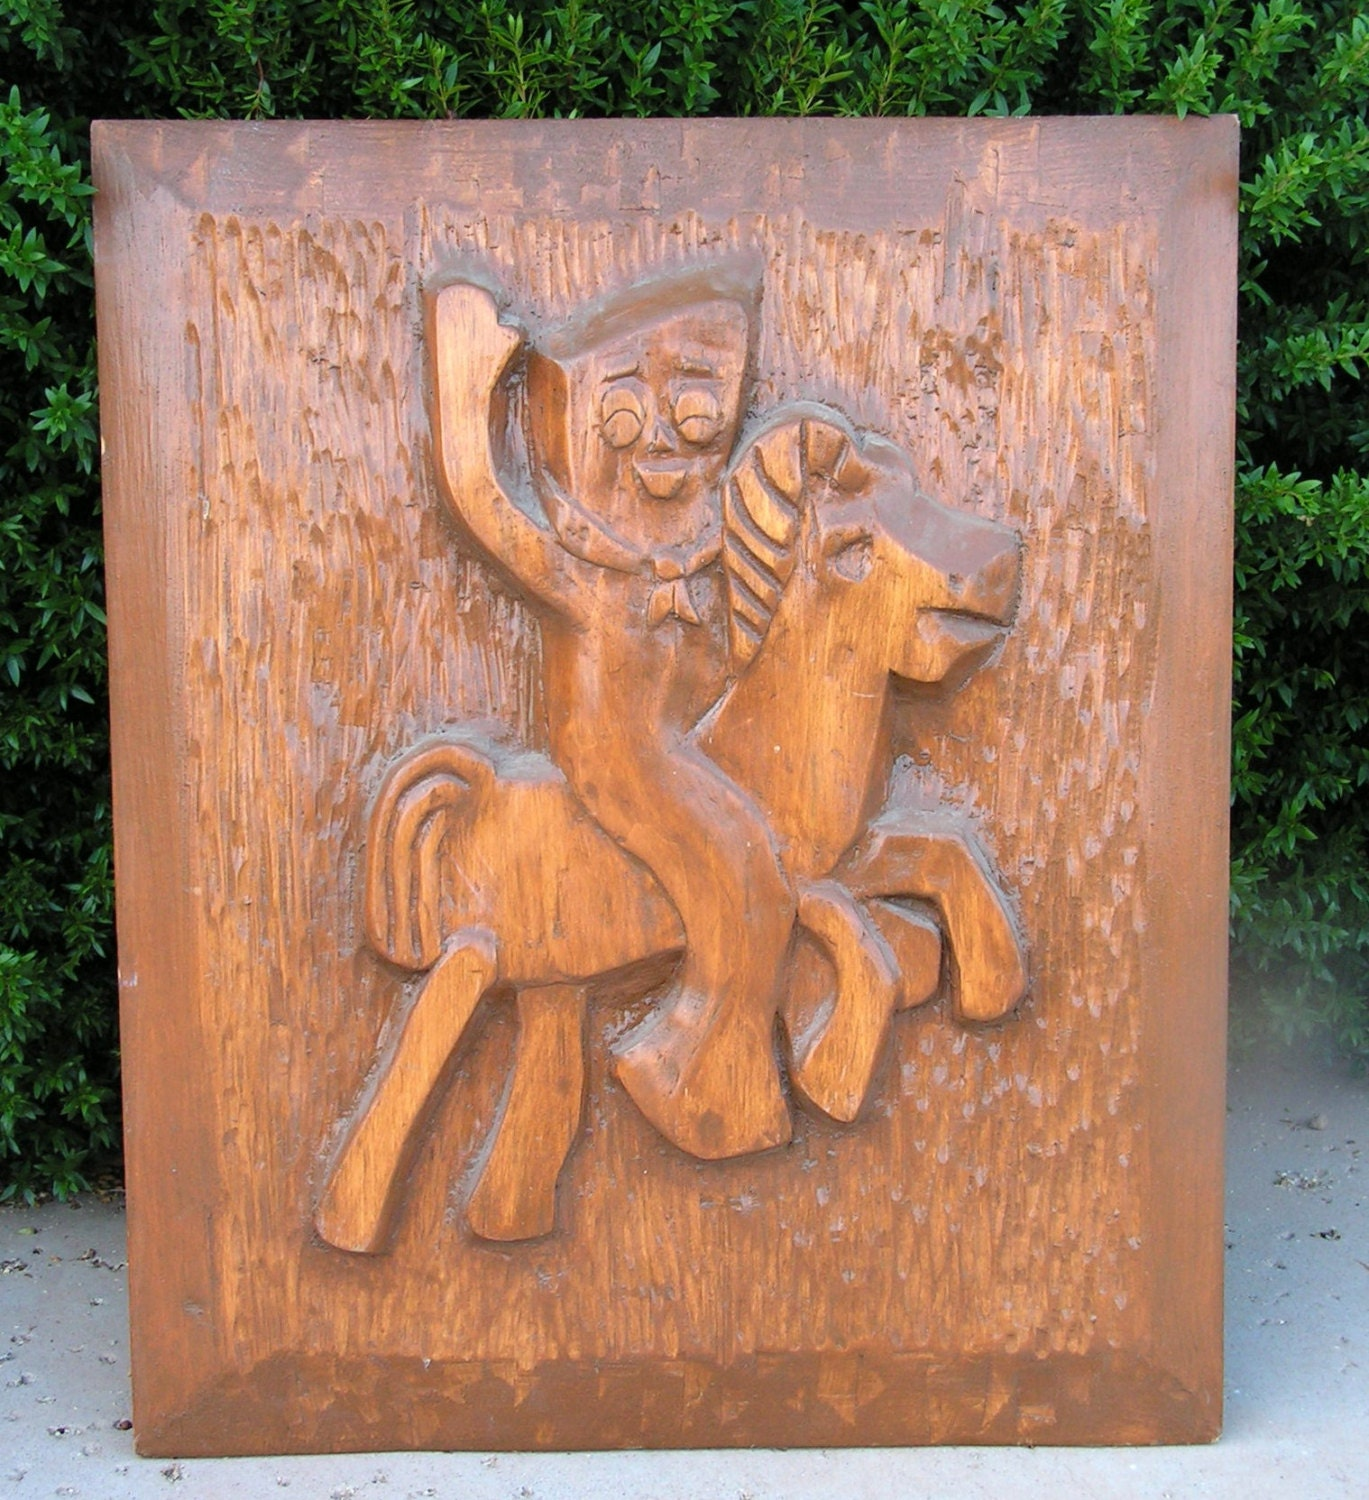 Vintage gumby pokey horse wood carving d relief wall